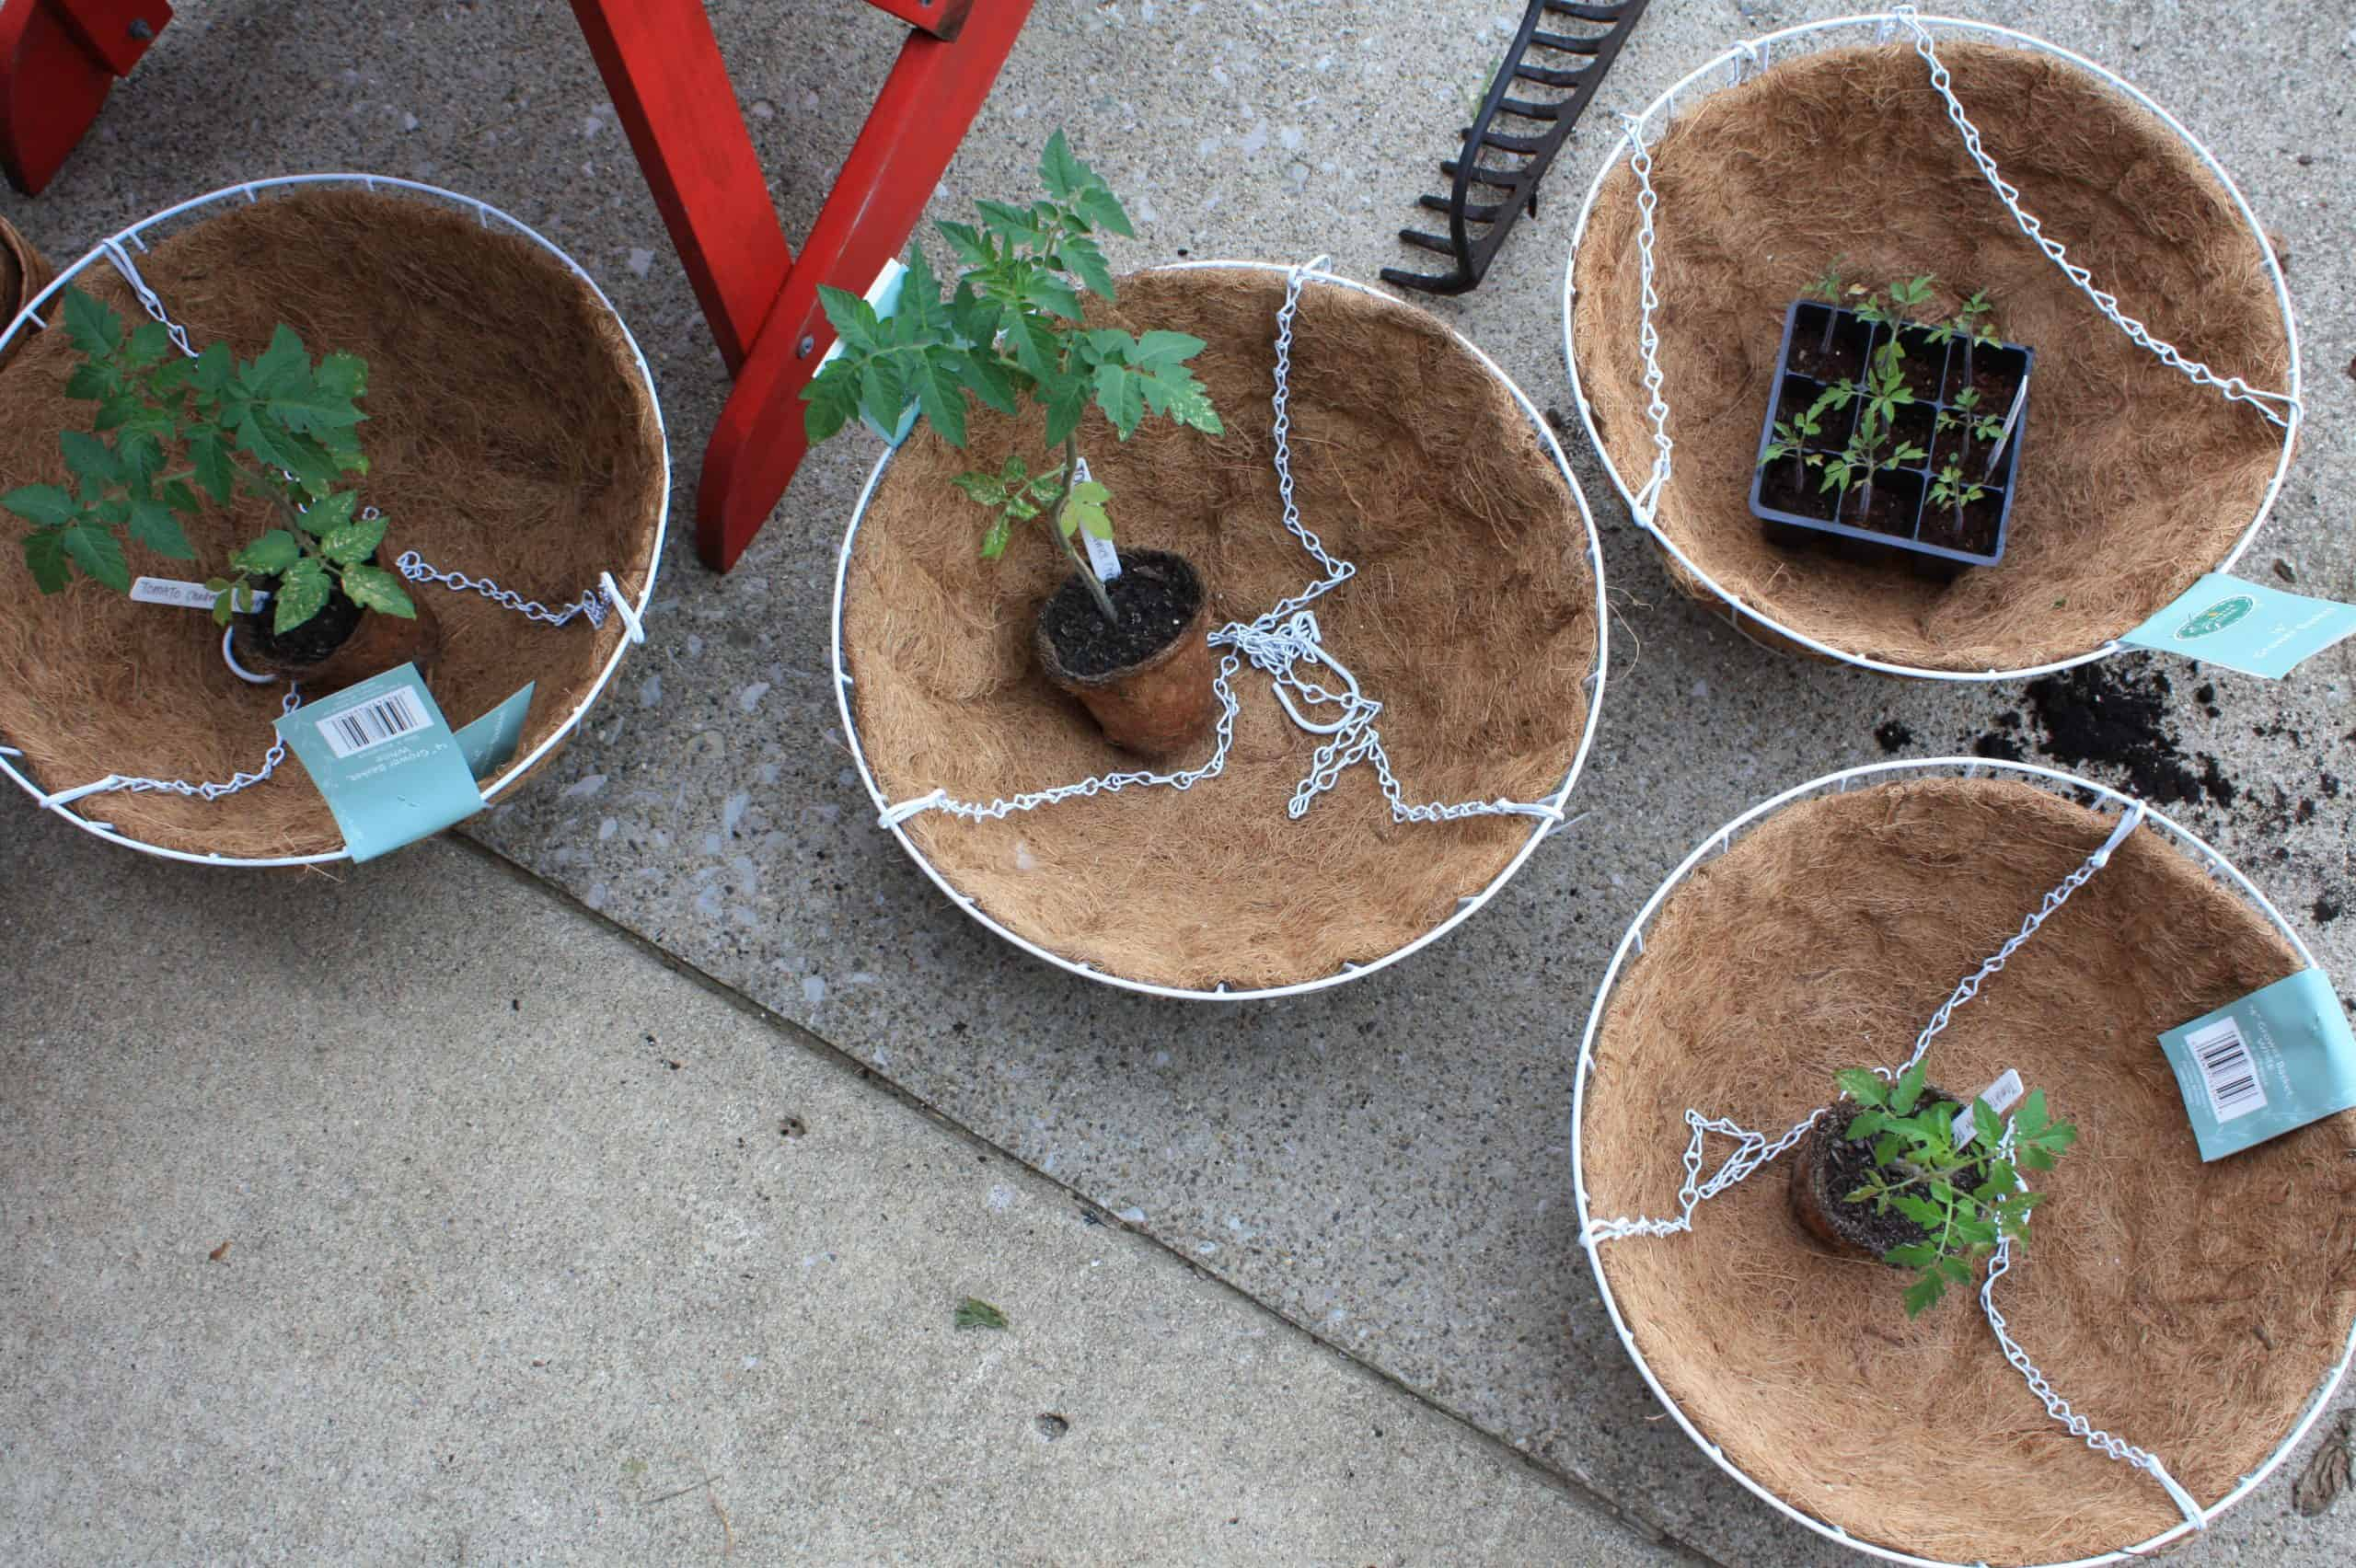 Starter plants sit in hanging baskets, ready to be planted.